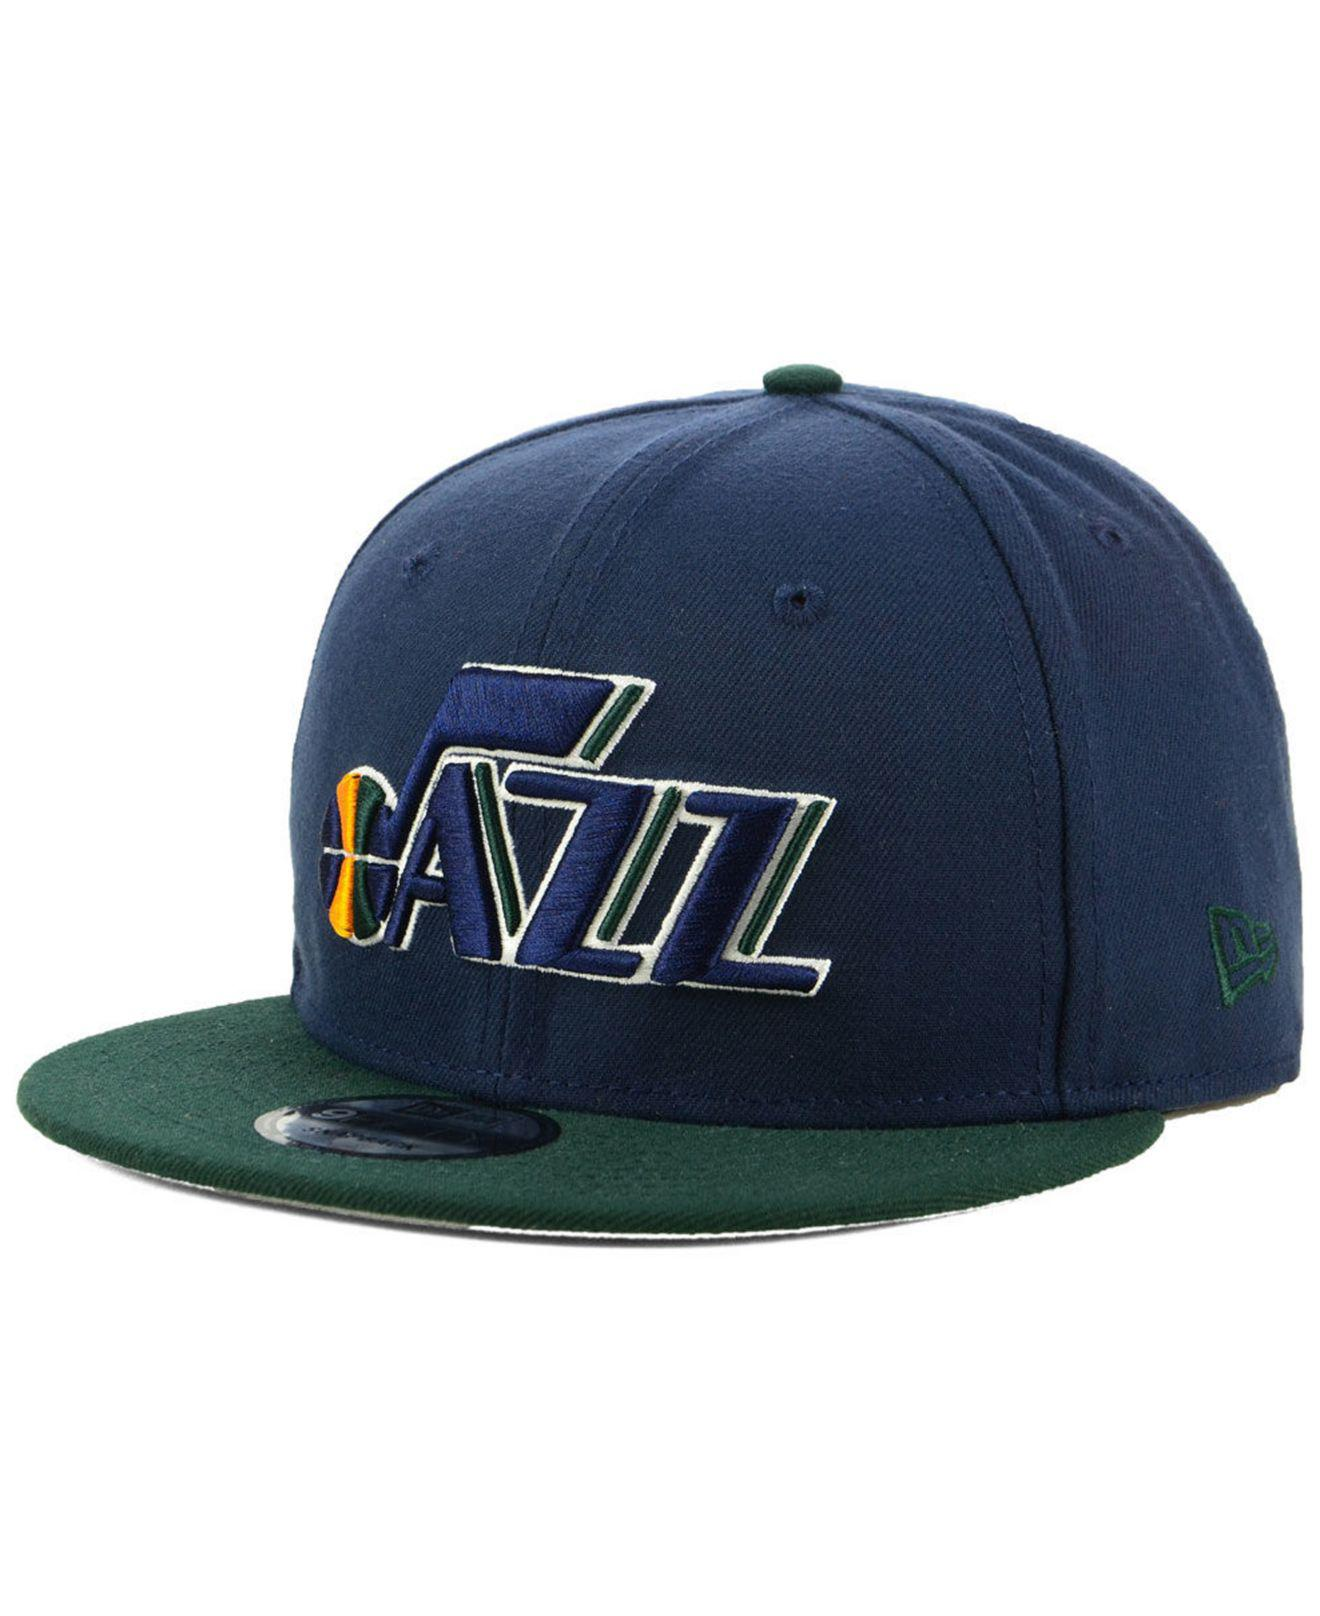 d10338d1fa8 Lyst - Ktz Utah Jazz Basic 2 Tone 9fifty Snapback Cap in Blue for Men